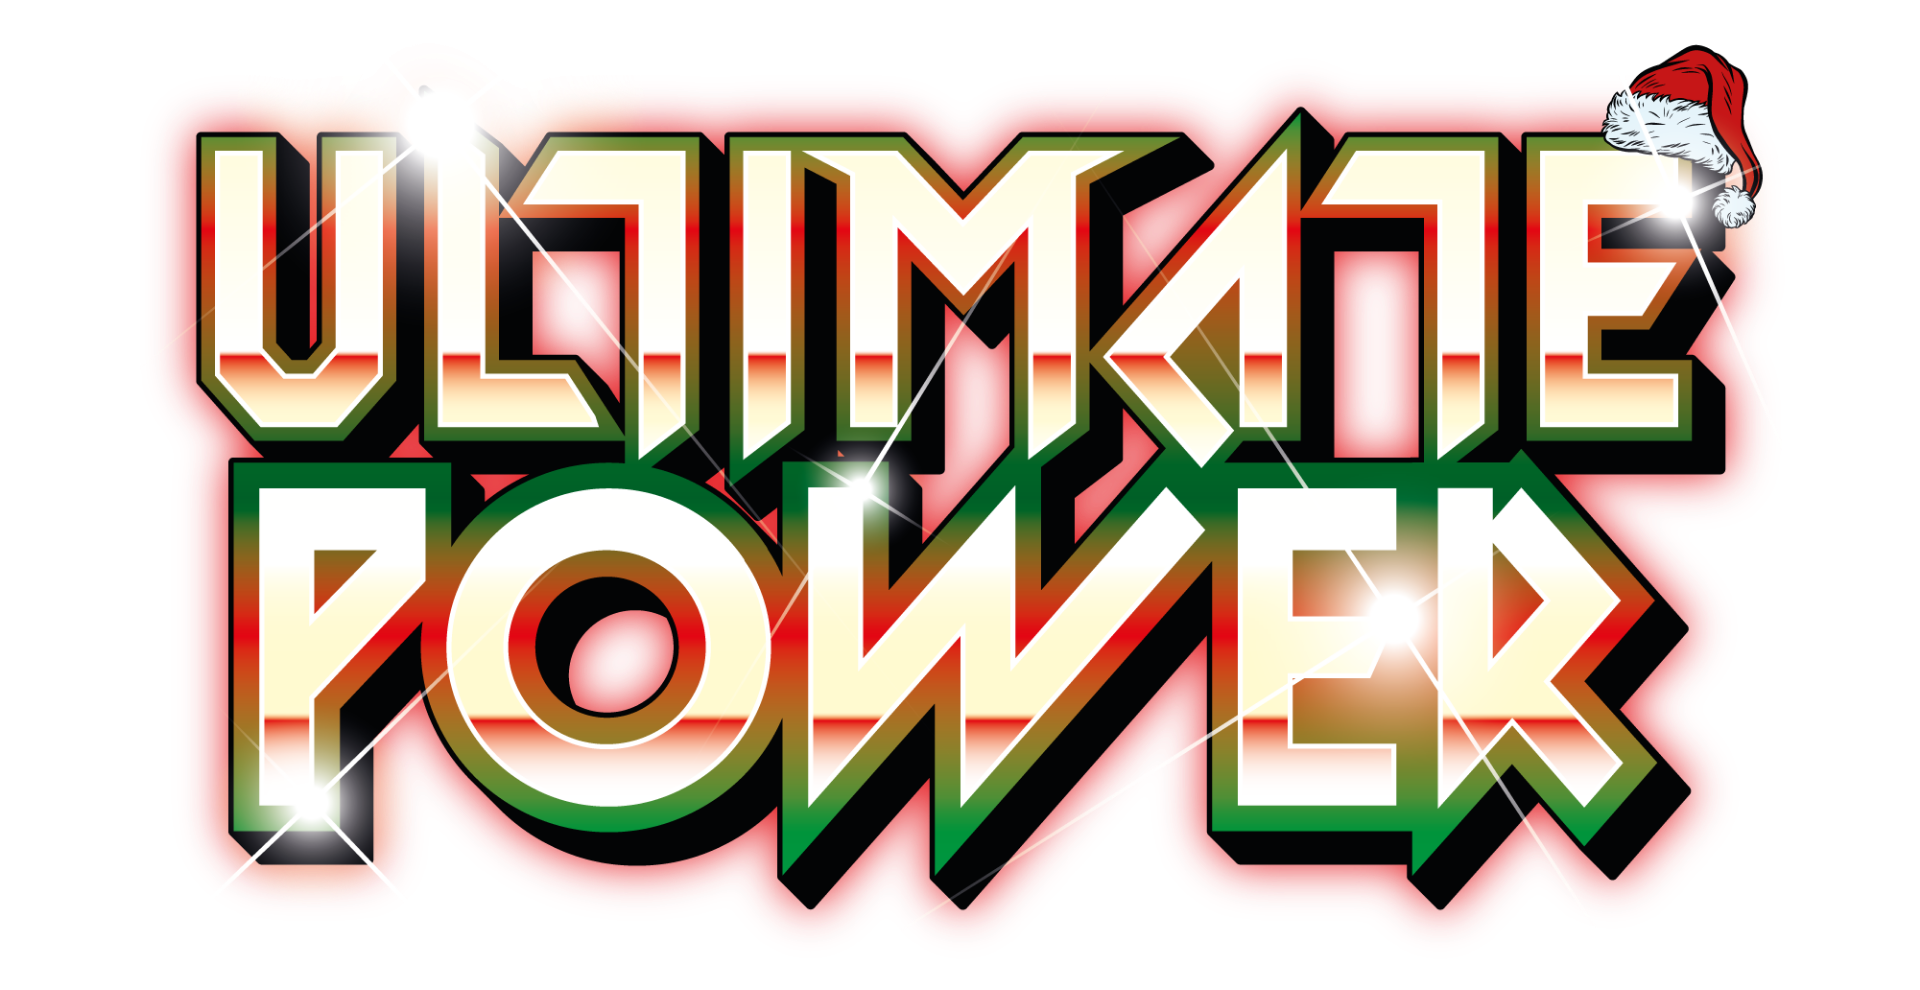 Ultimate Power - The Christmas Special!